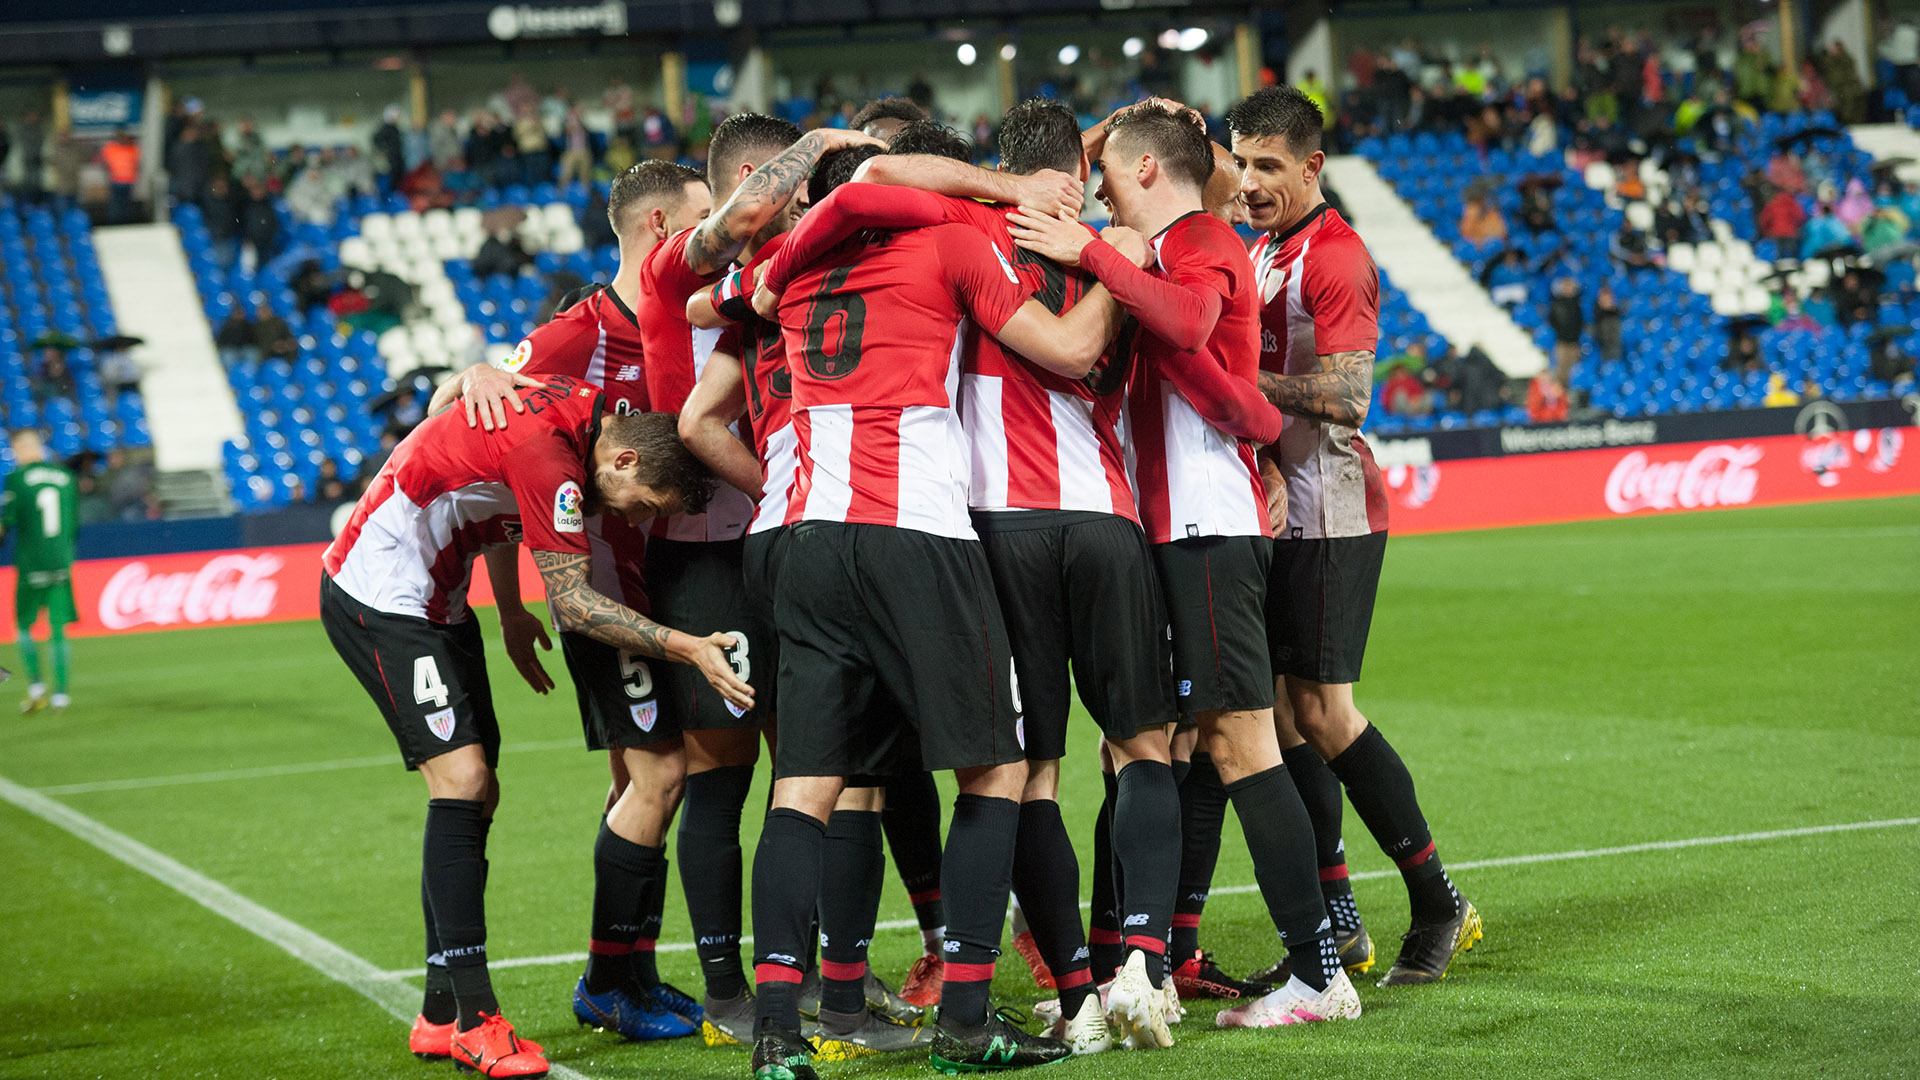 CD Leganés 0 Athletic Club 1